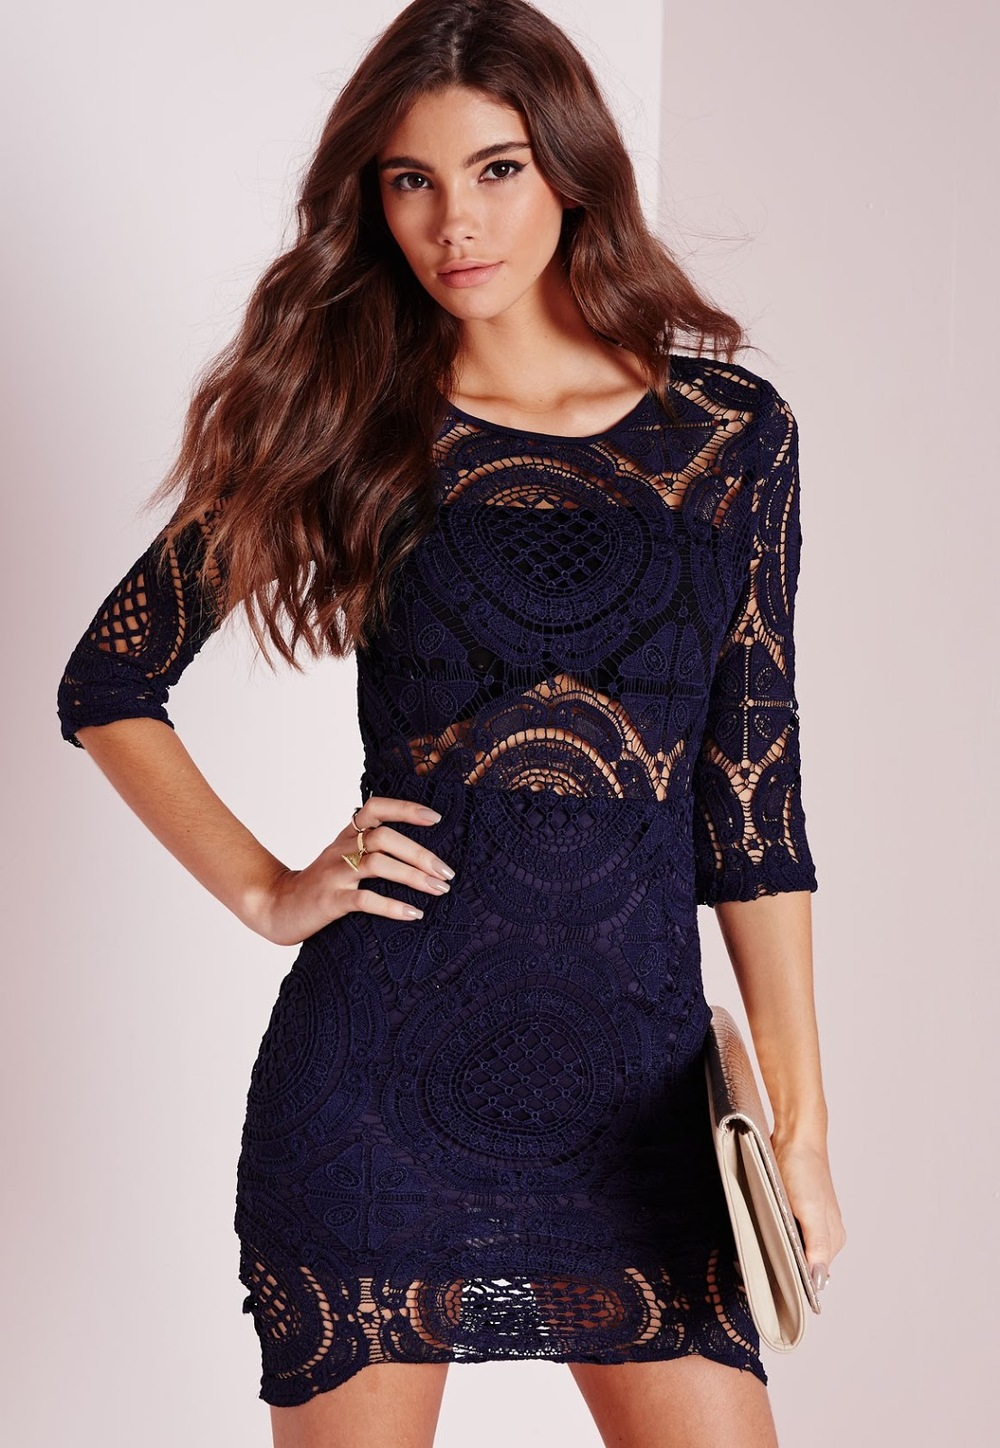 Misguided Lace Bodycon Dress in Navy, $77 at    MisguidedUS.com   .